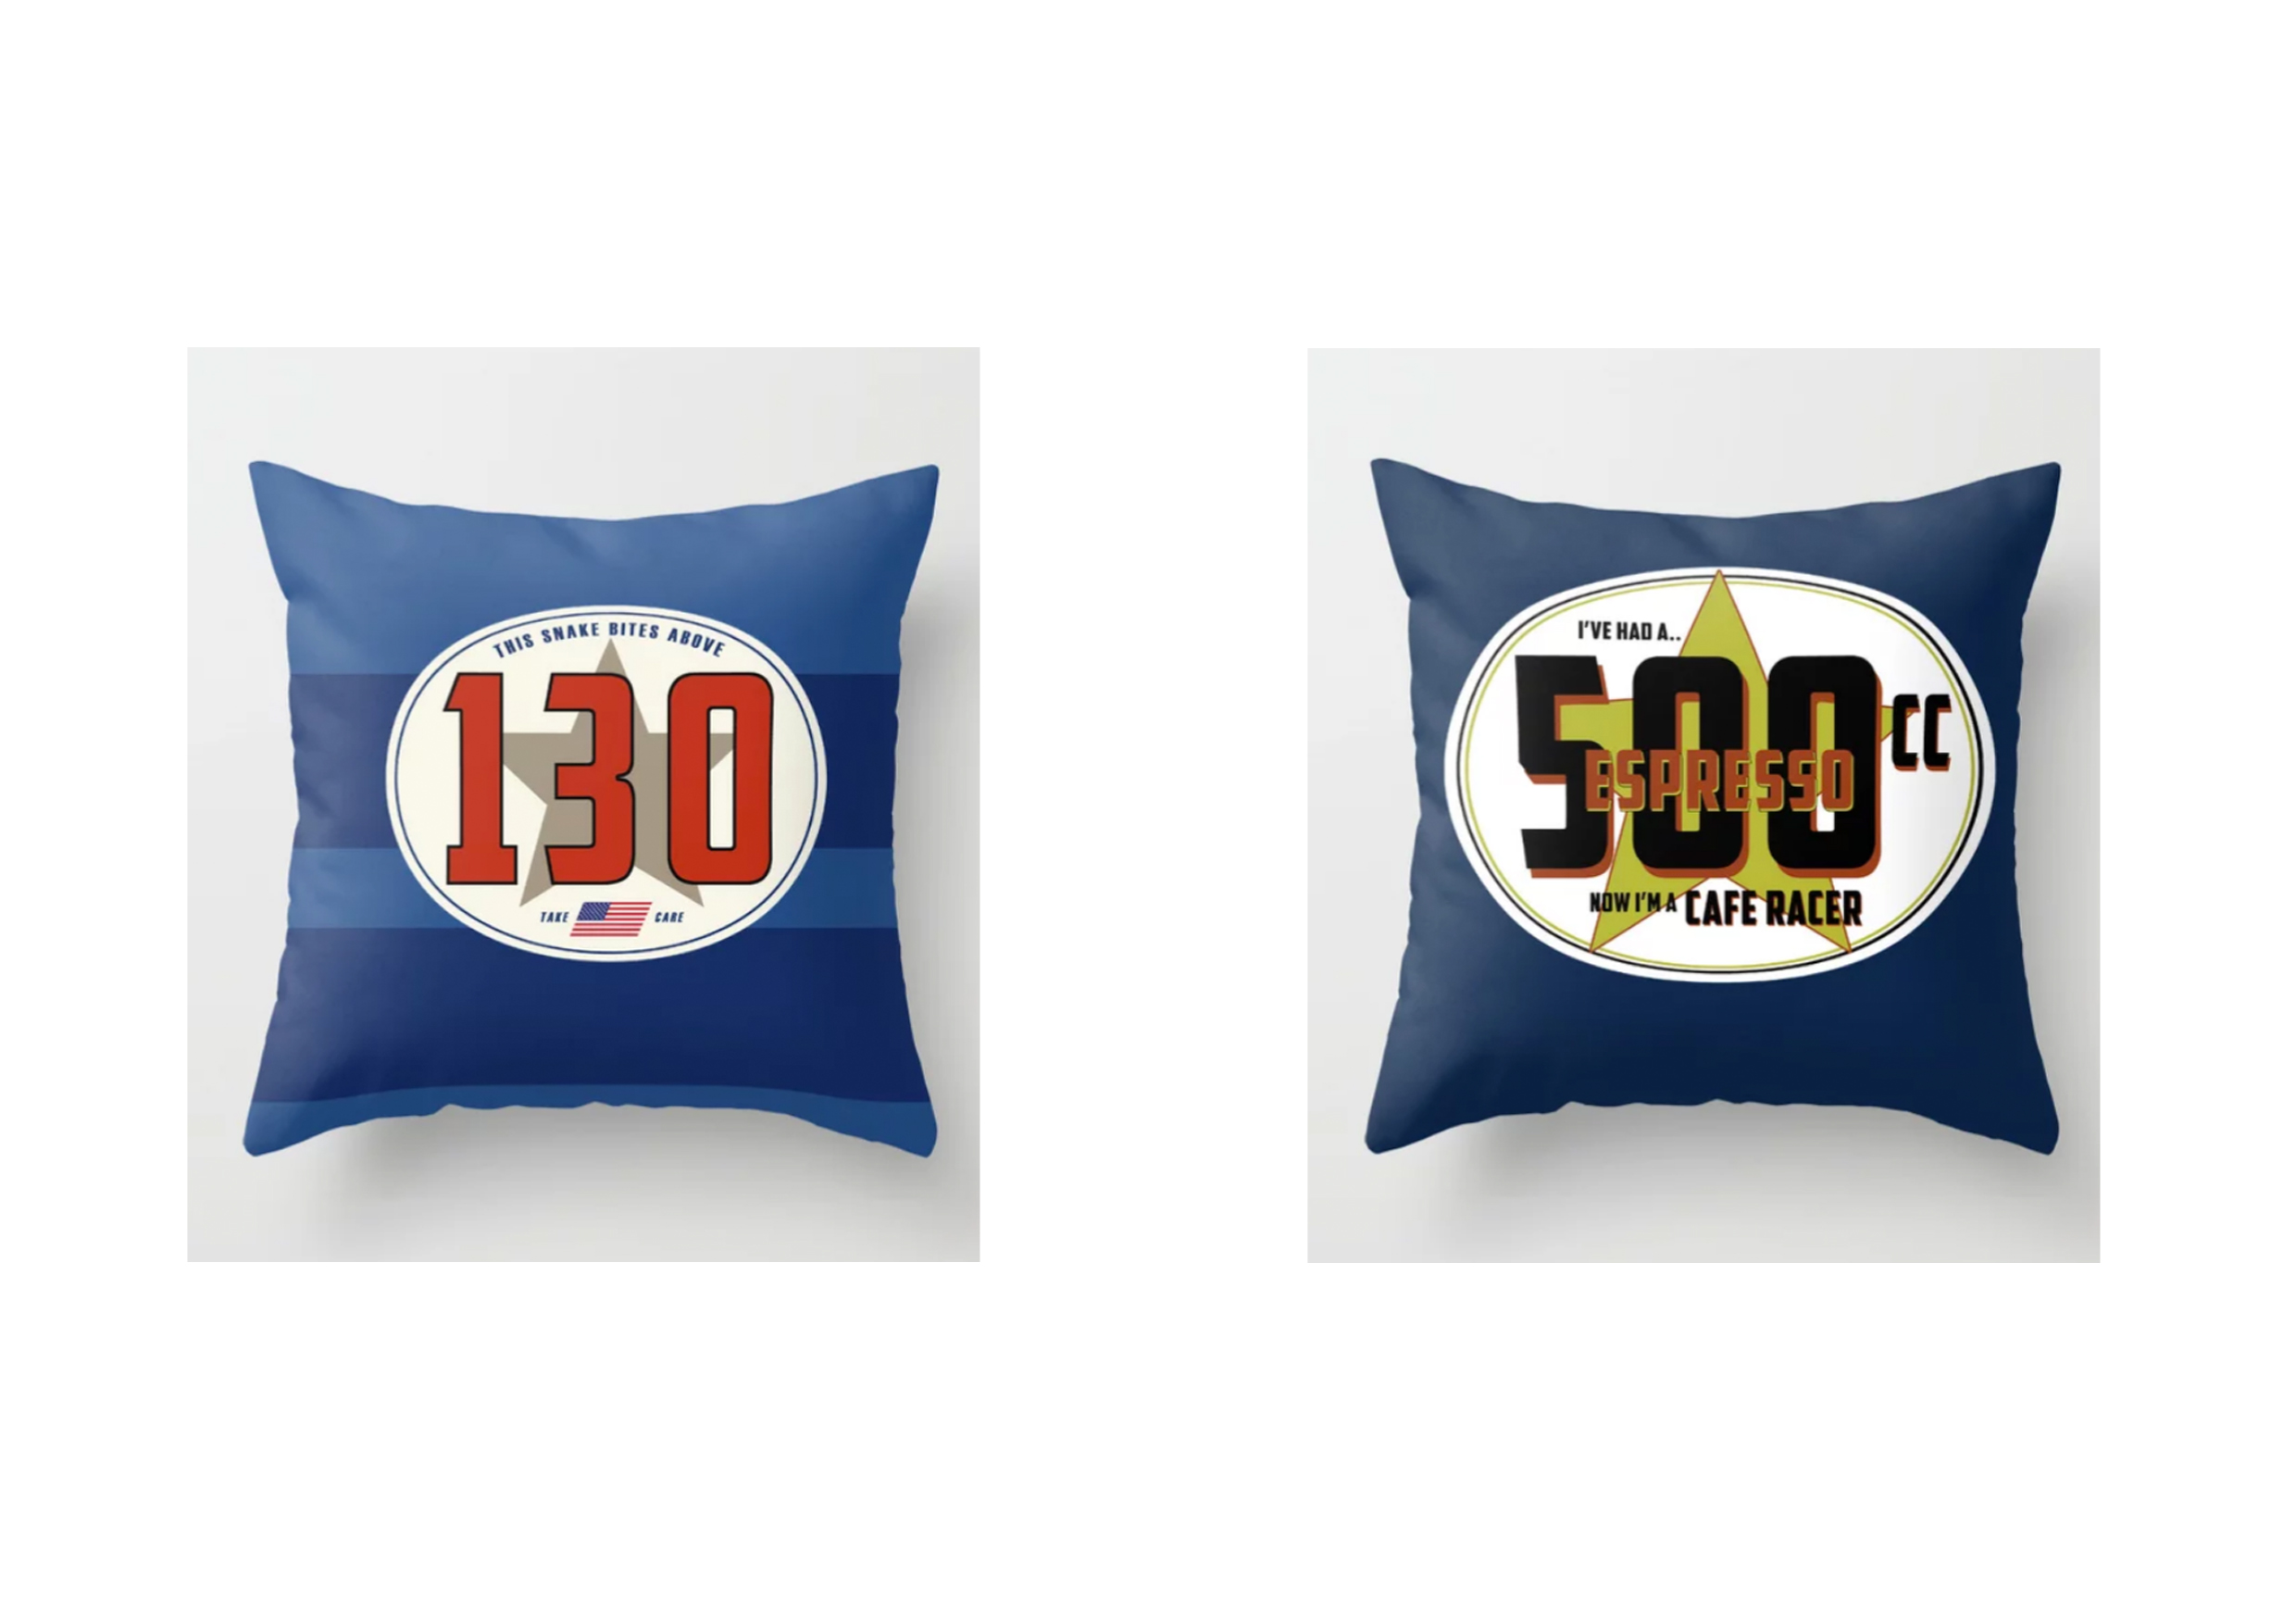 Racecar Rebels Cushions